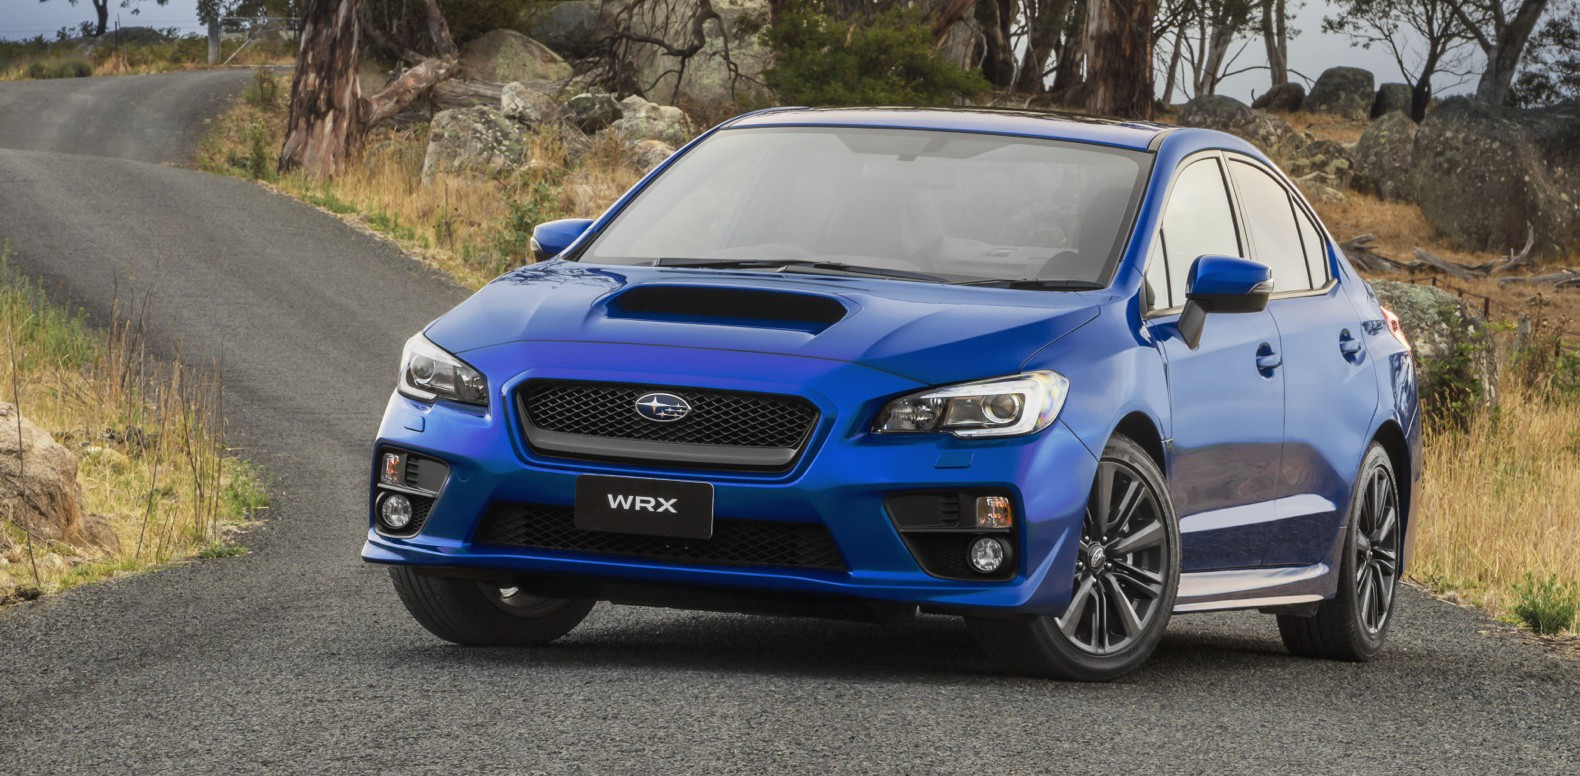 Best Photo: 2015 Subaru WRX (Blue)